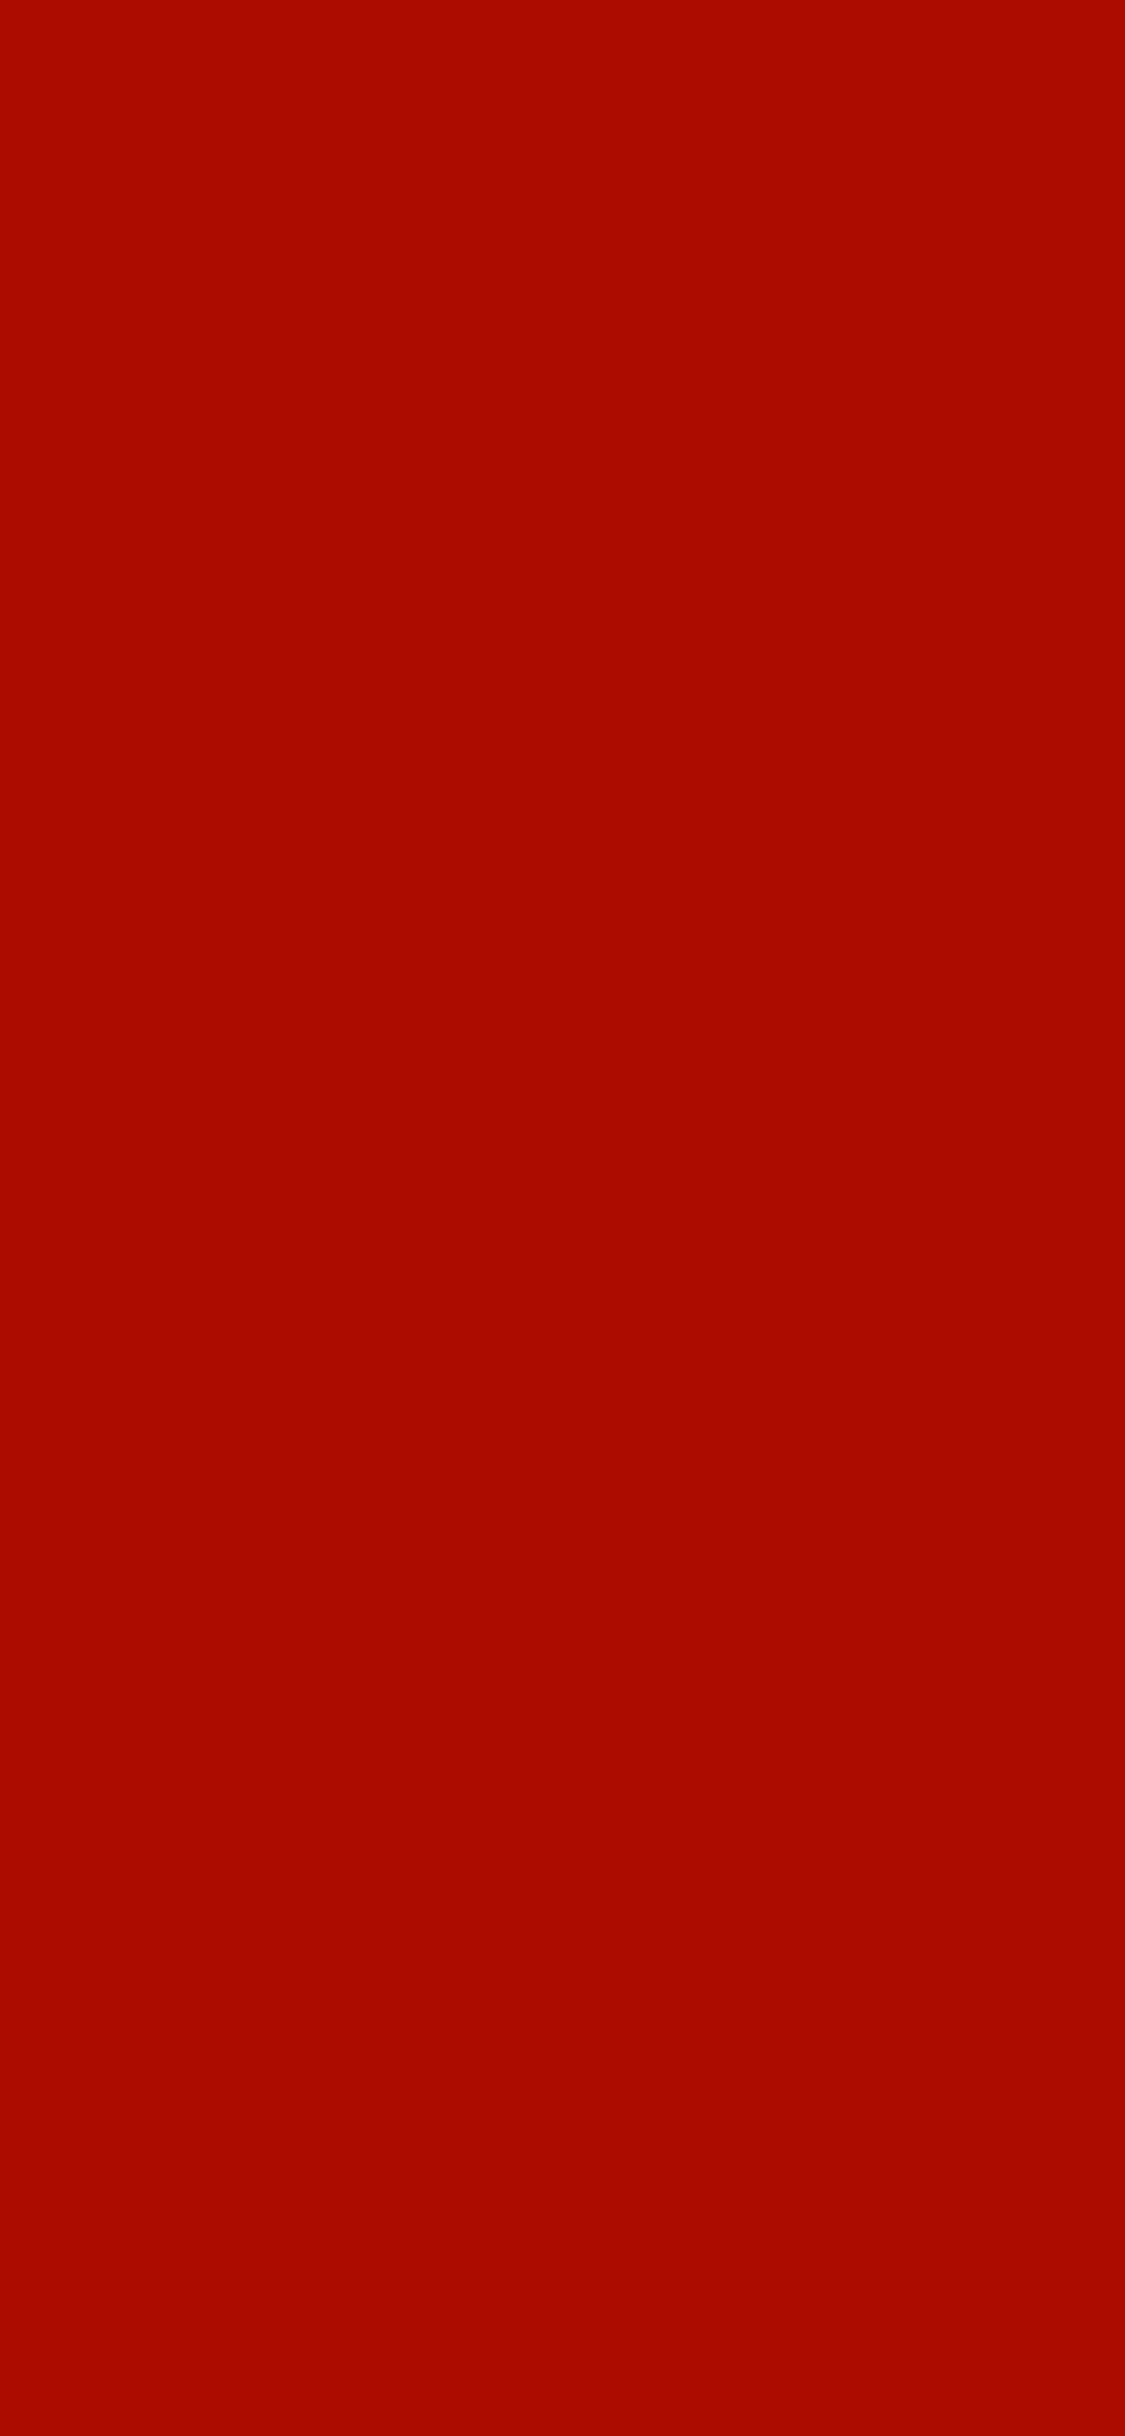 1125x2436 Mordant Red 19 Solid Color Background